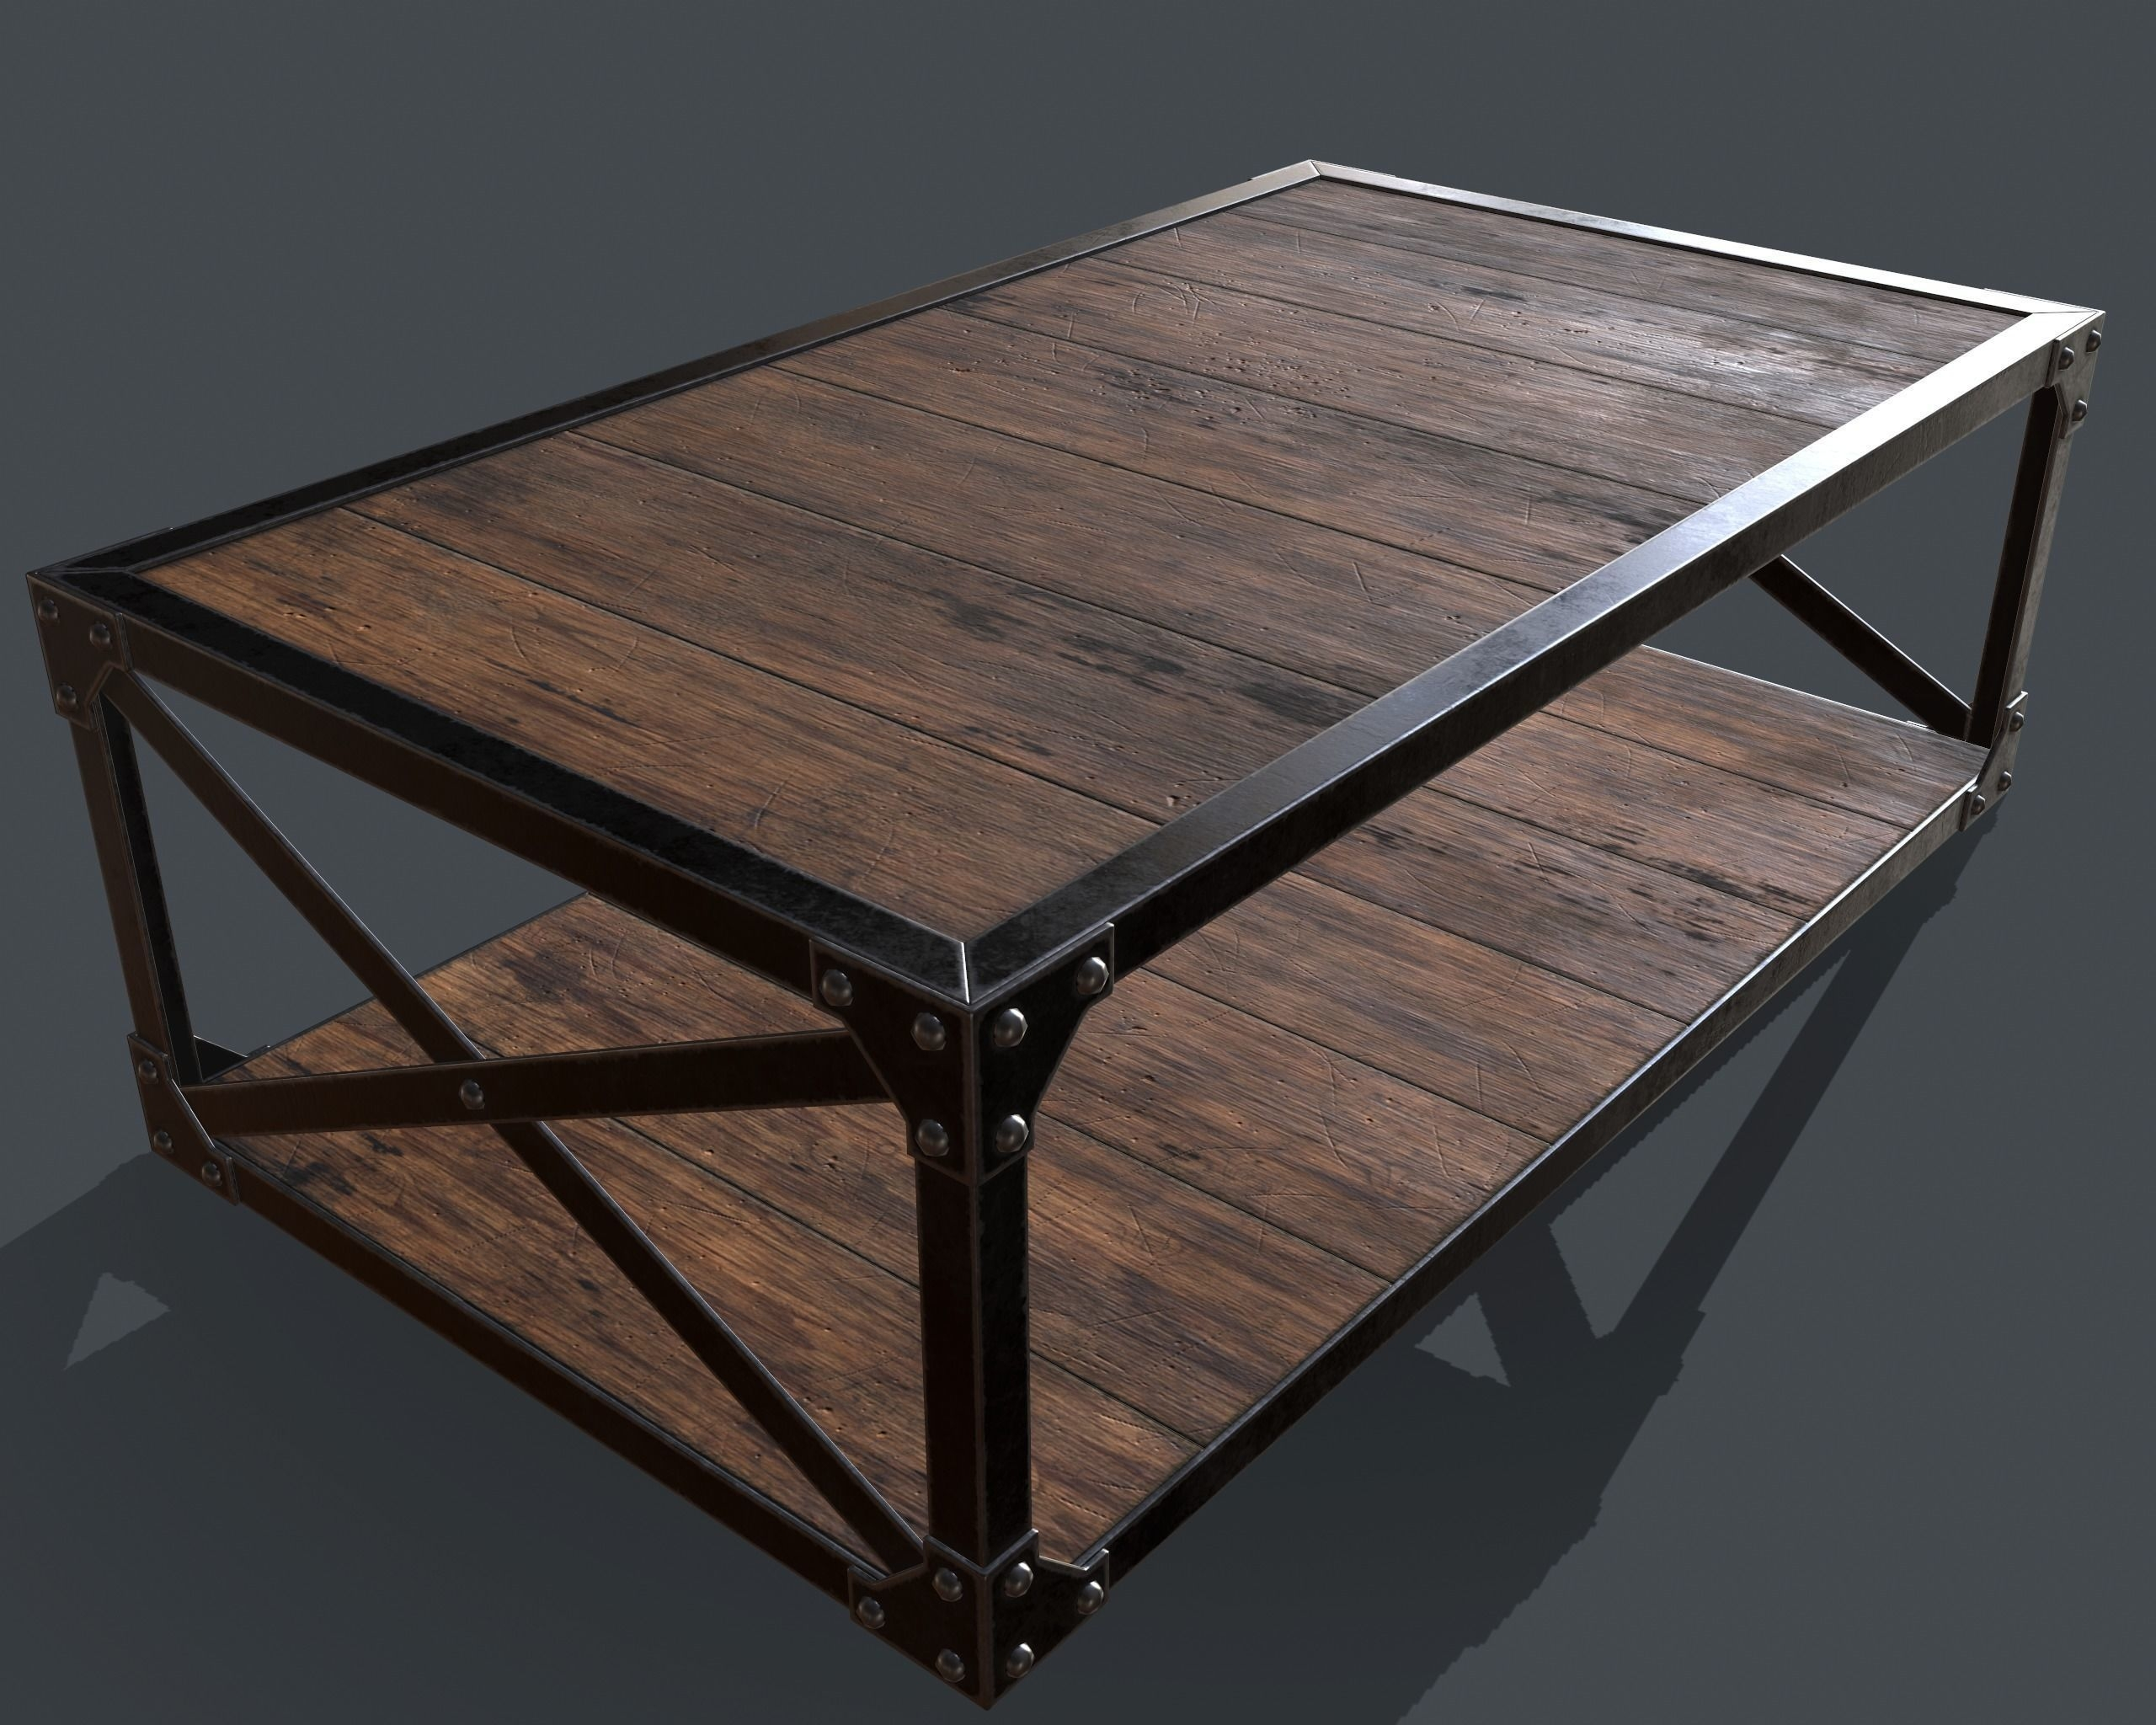 Industrial Style Coffee Table 3d Asset | Cgtrader Inside Industrial Style Coffee Tables (View 8 of 15)